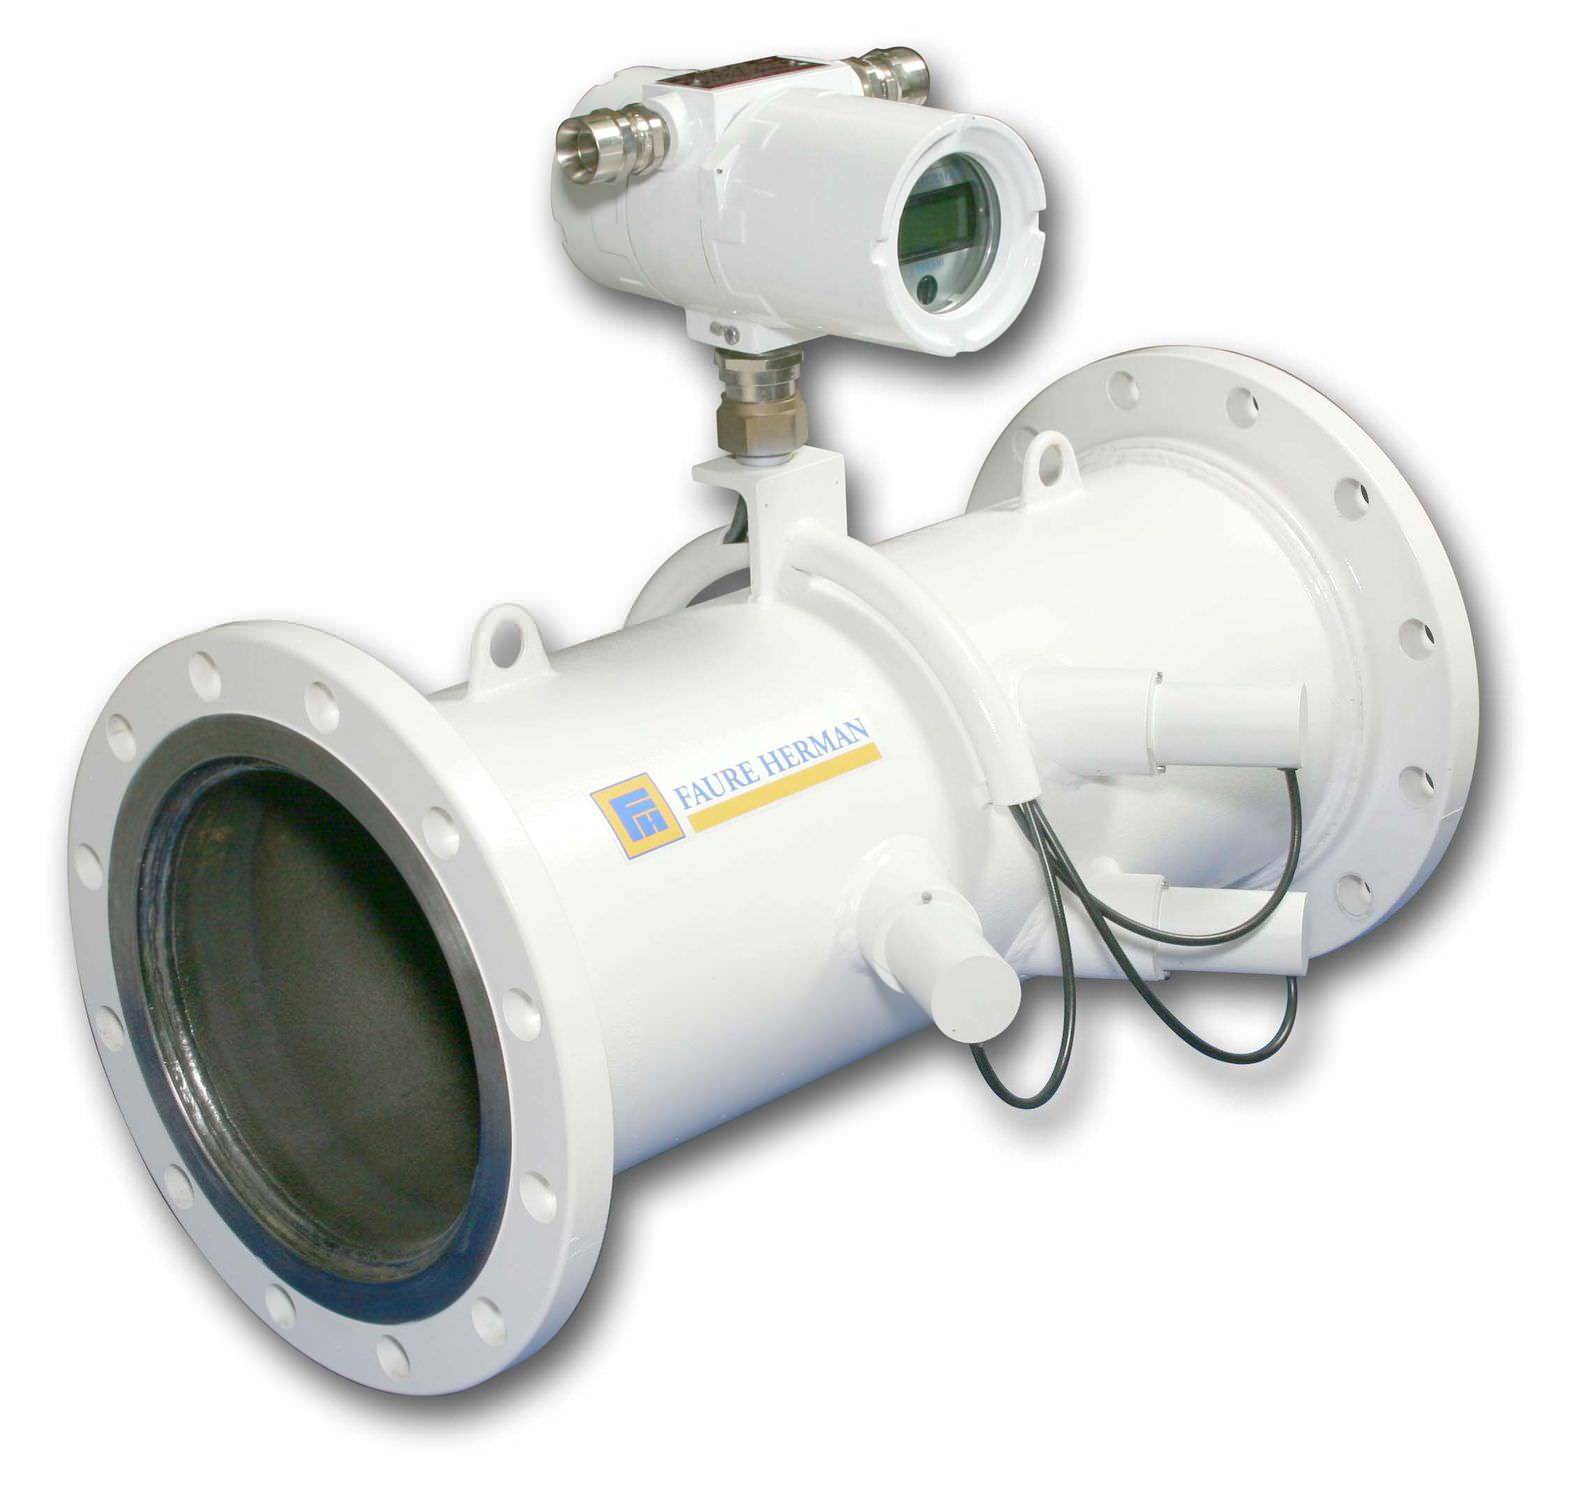 Ultrasonic flow meter for liquids for hydrocarbons in line